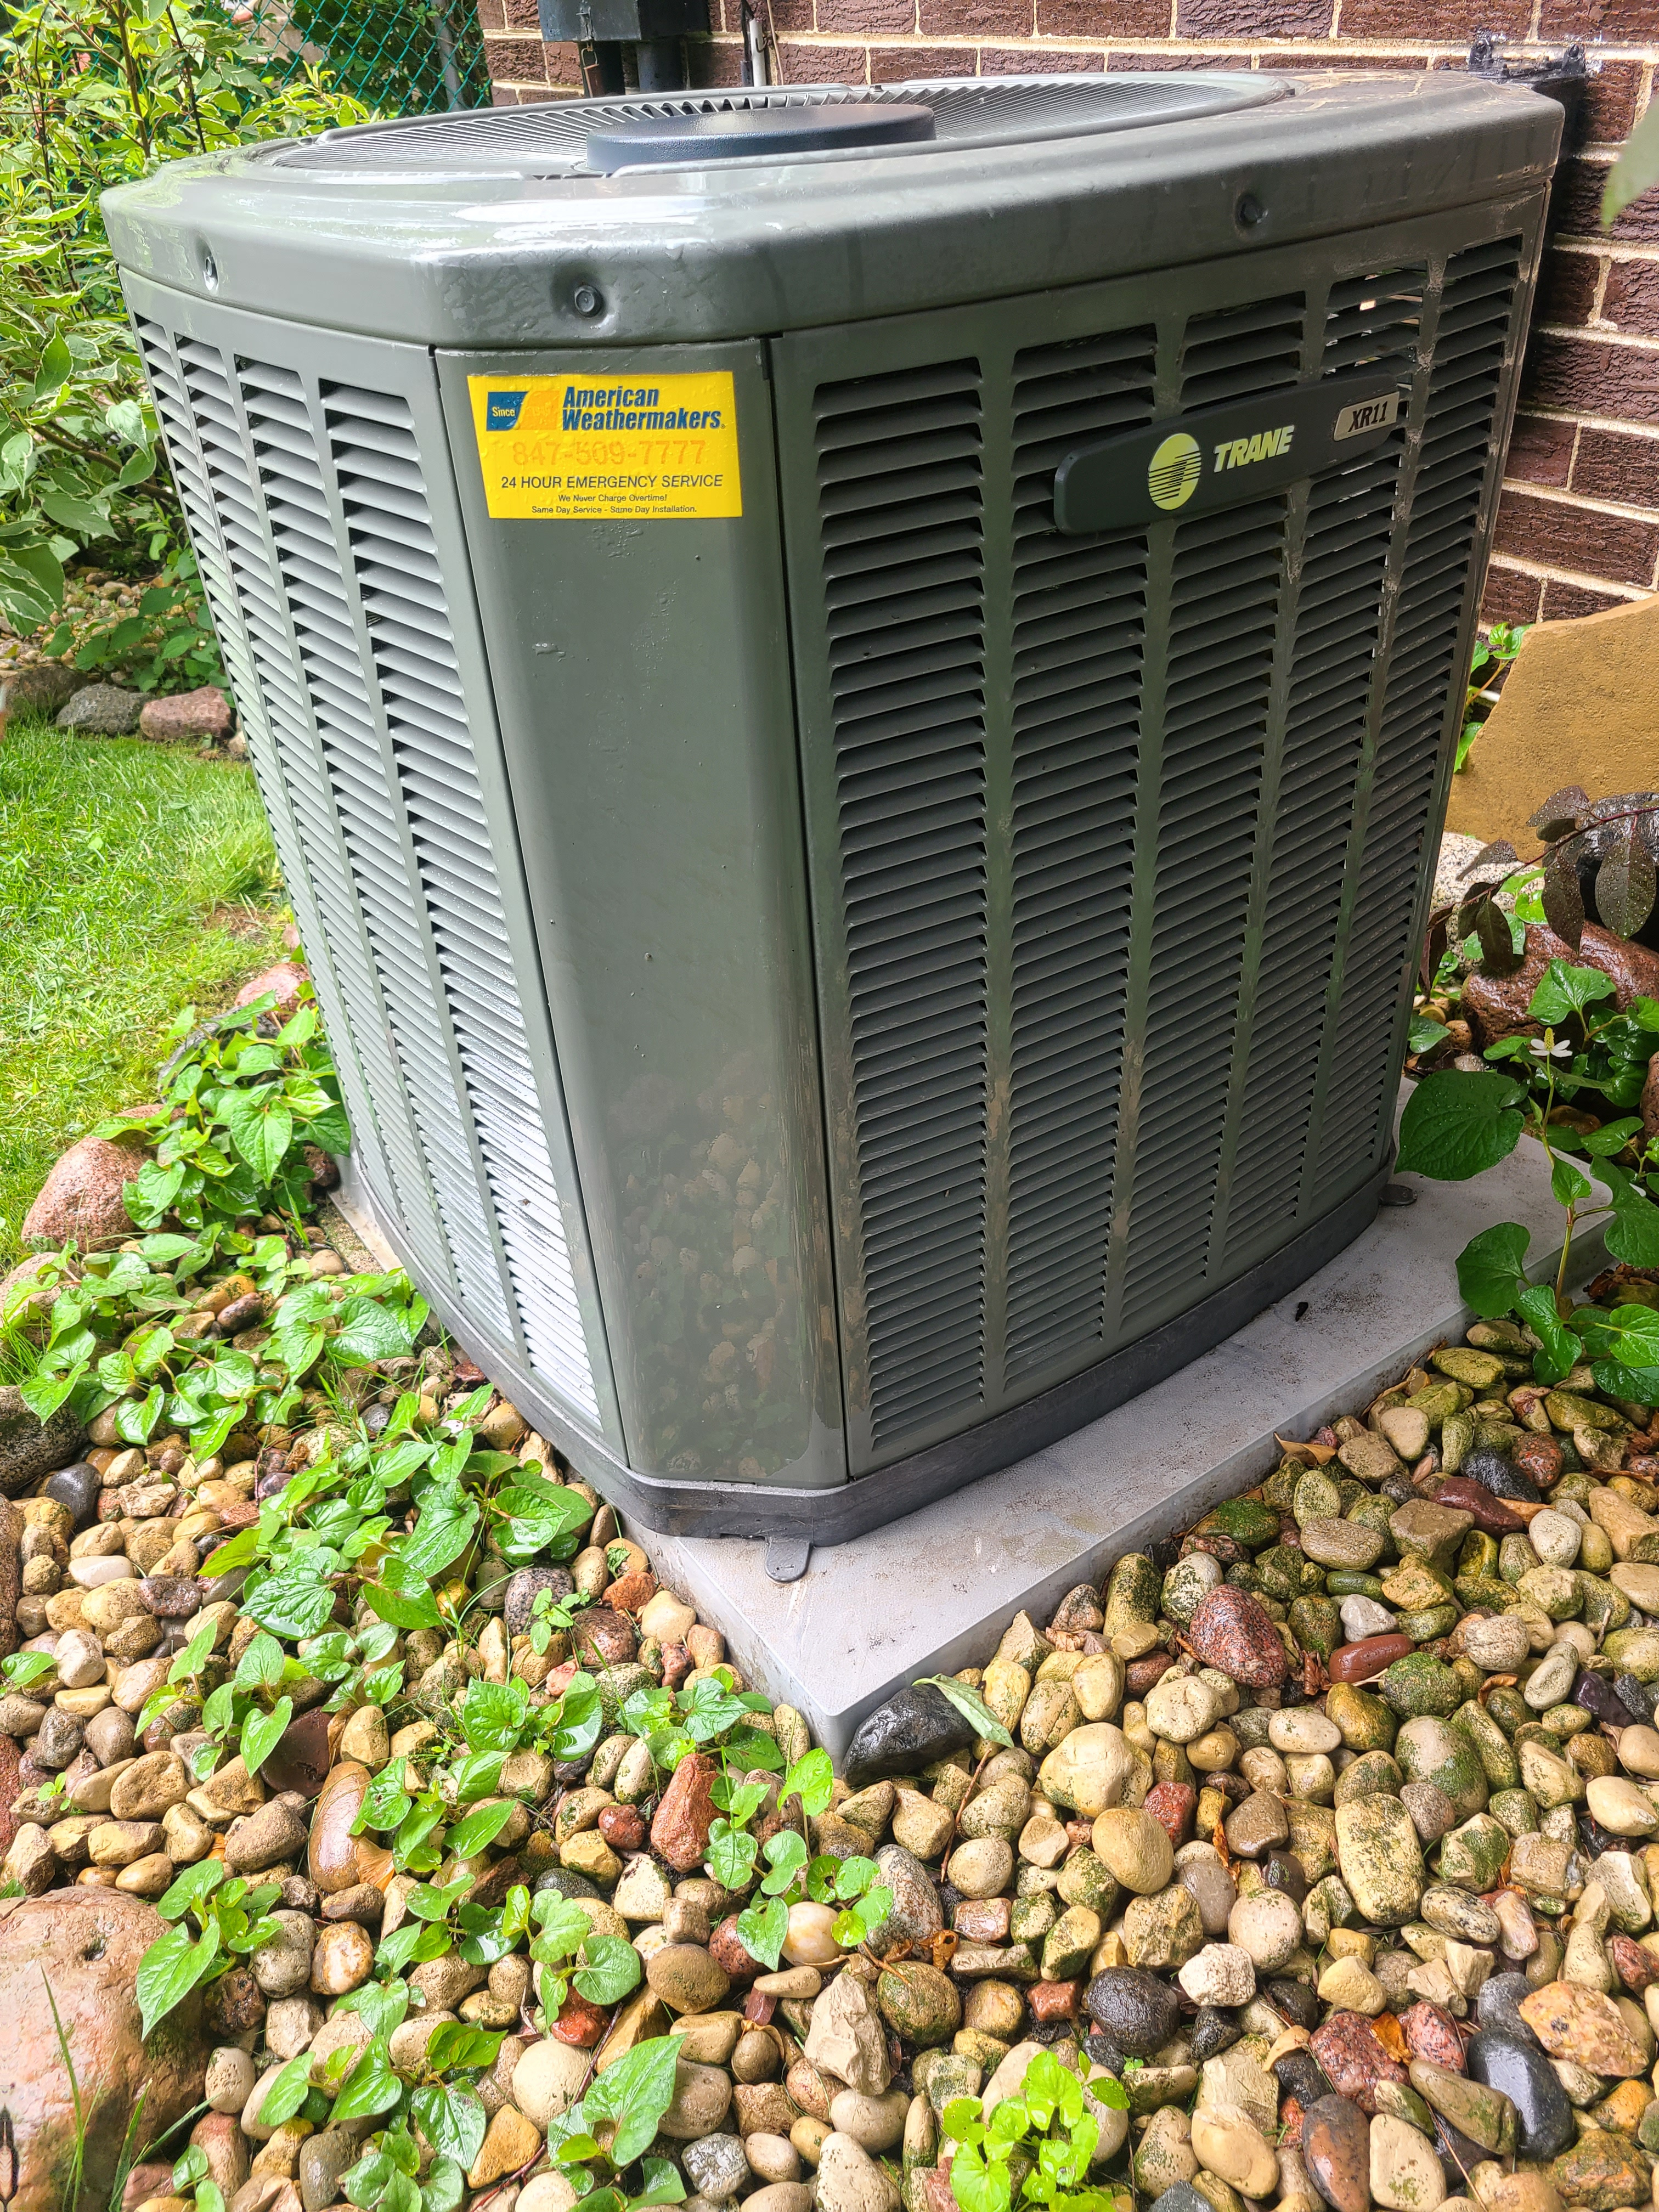 Trane air conditioner low on R22 refrigerant, filled.